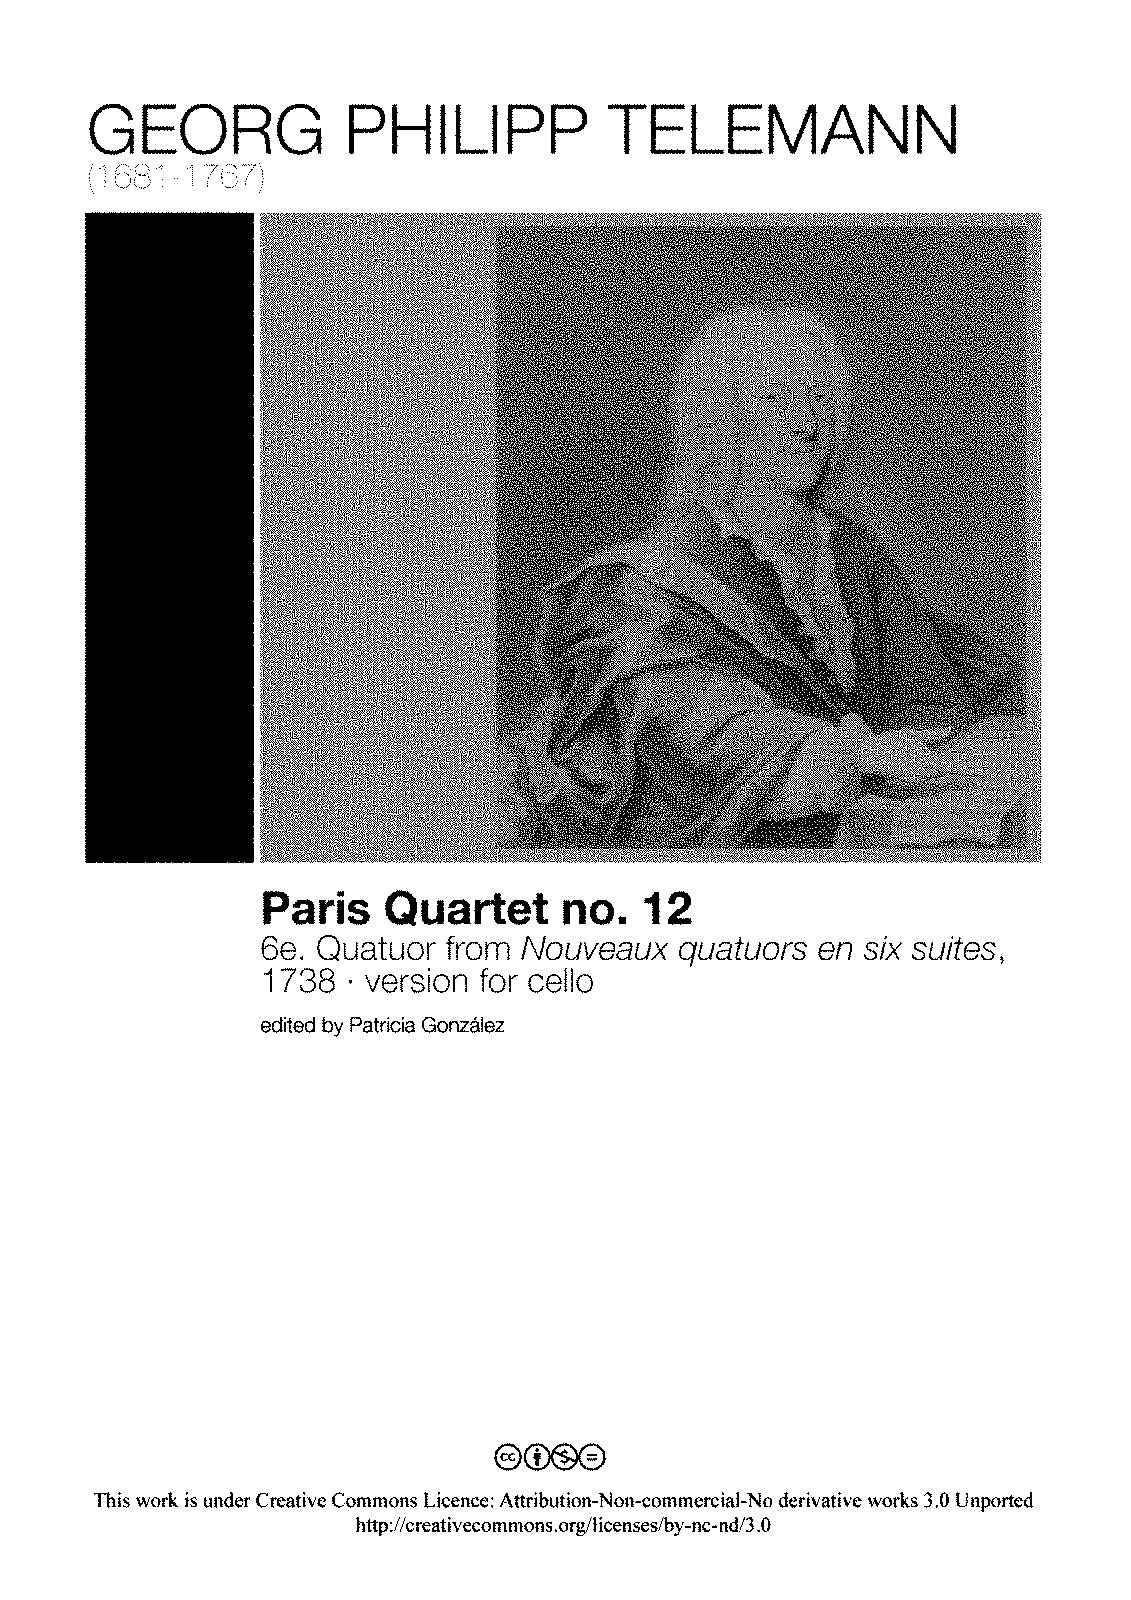 PMLP376689-TELEMANN Paris Quartet no12.pdf